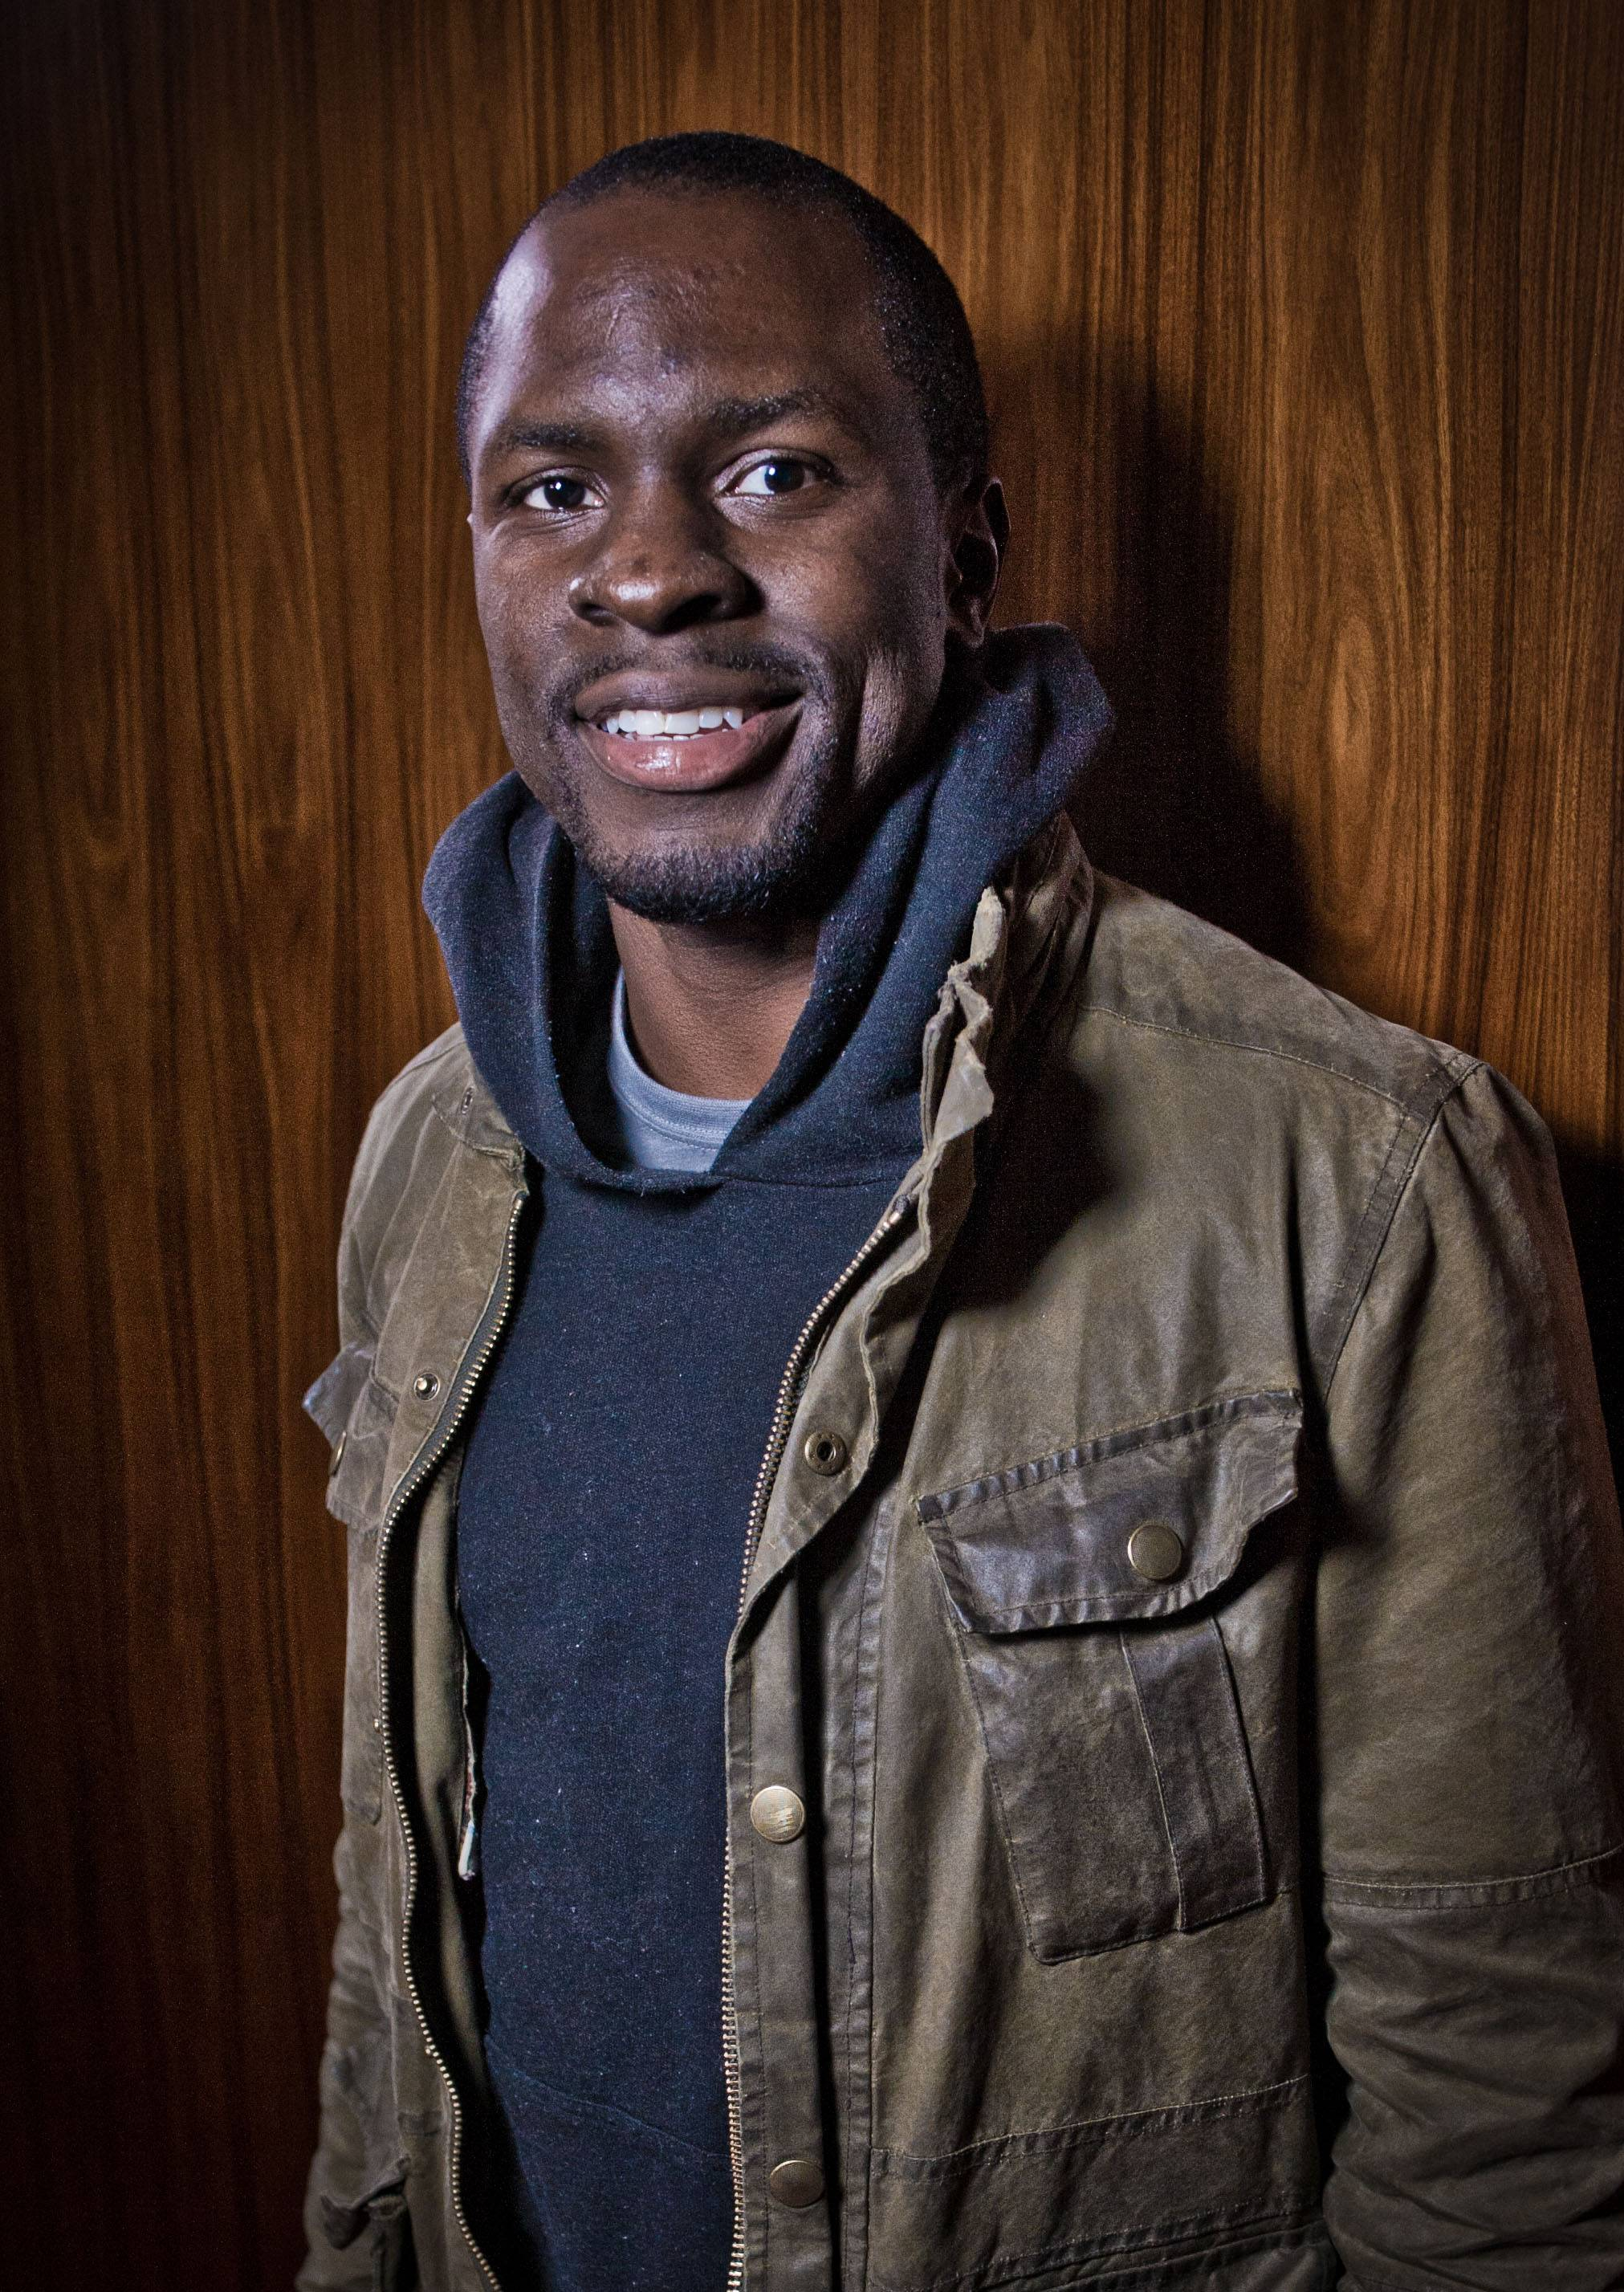 Gbenga Who? - The son of Nigerian parents, Gbenga Akinnagbe was raised in Silver Spring, Maryland, and has gained familiarity through appearances in a slew of hit movies and TV shows. He can currently be seen playing Kelly Slater in the TV series Nurse Jackie.(Photo by Adrian Sidney/PictureGroup)